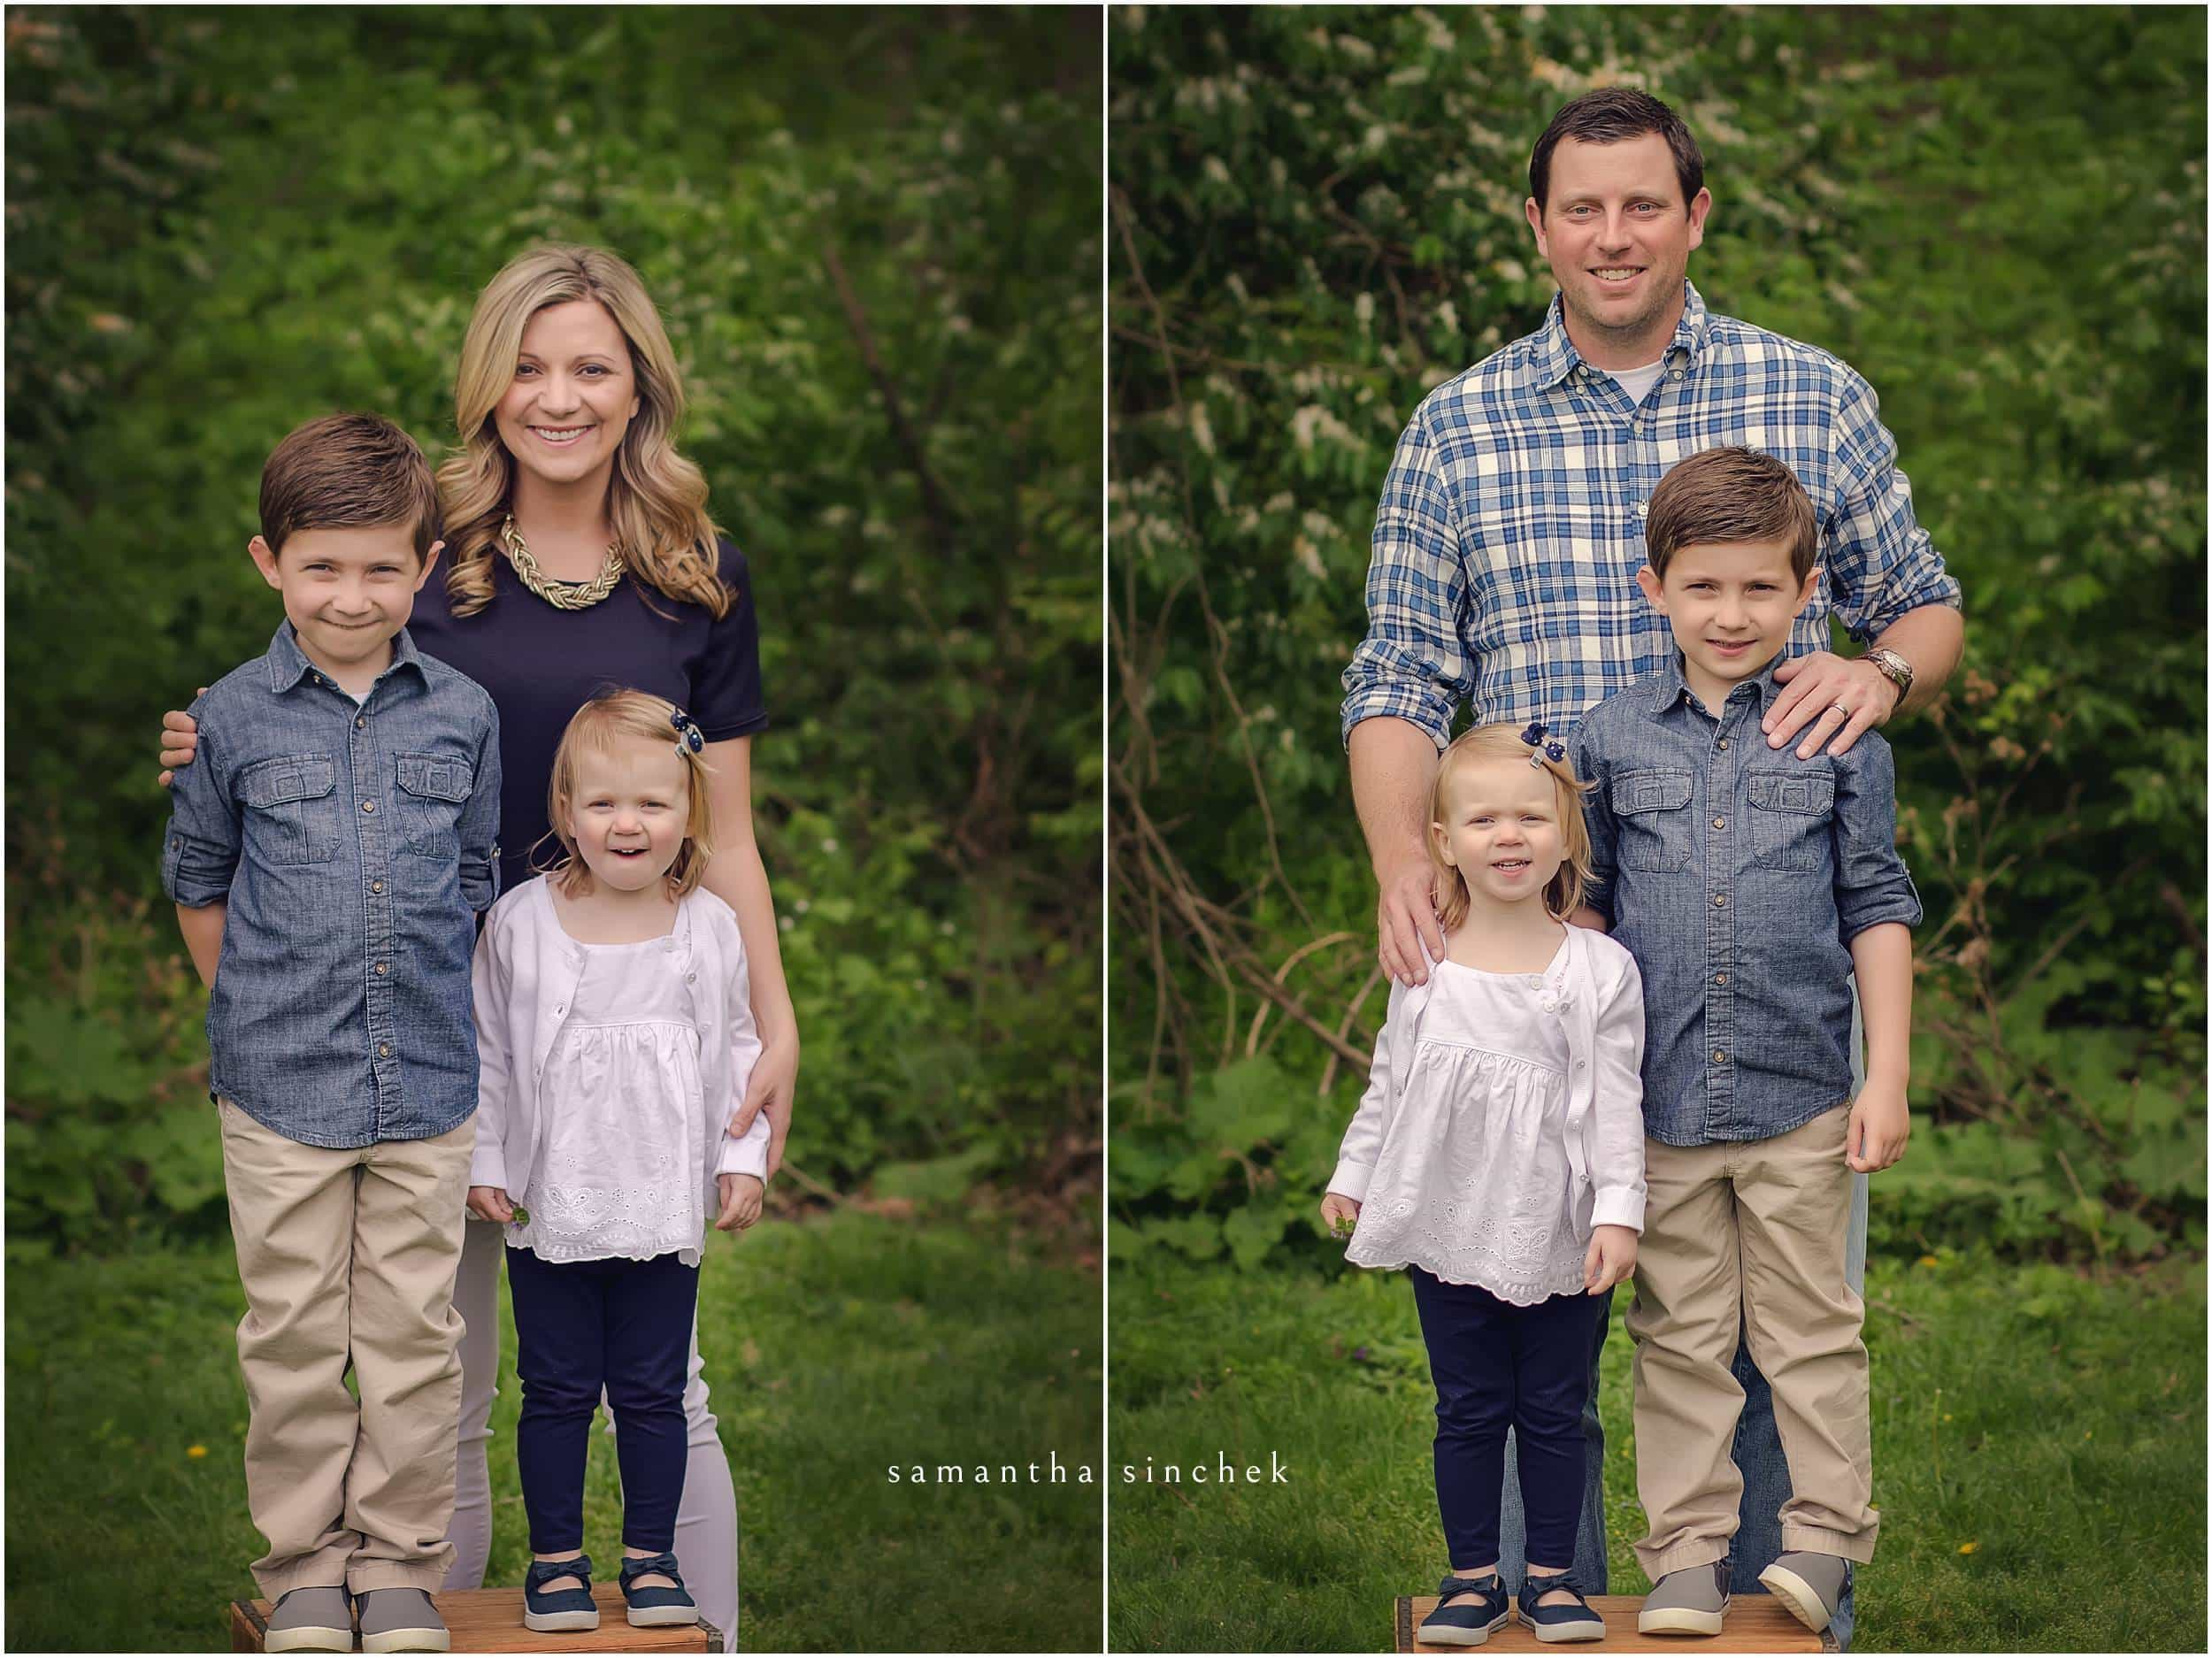 mother and father with children at family mini session Sharon woods with samantha SINCHEK